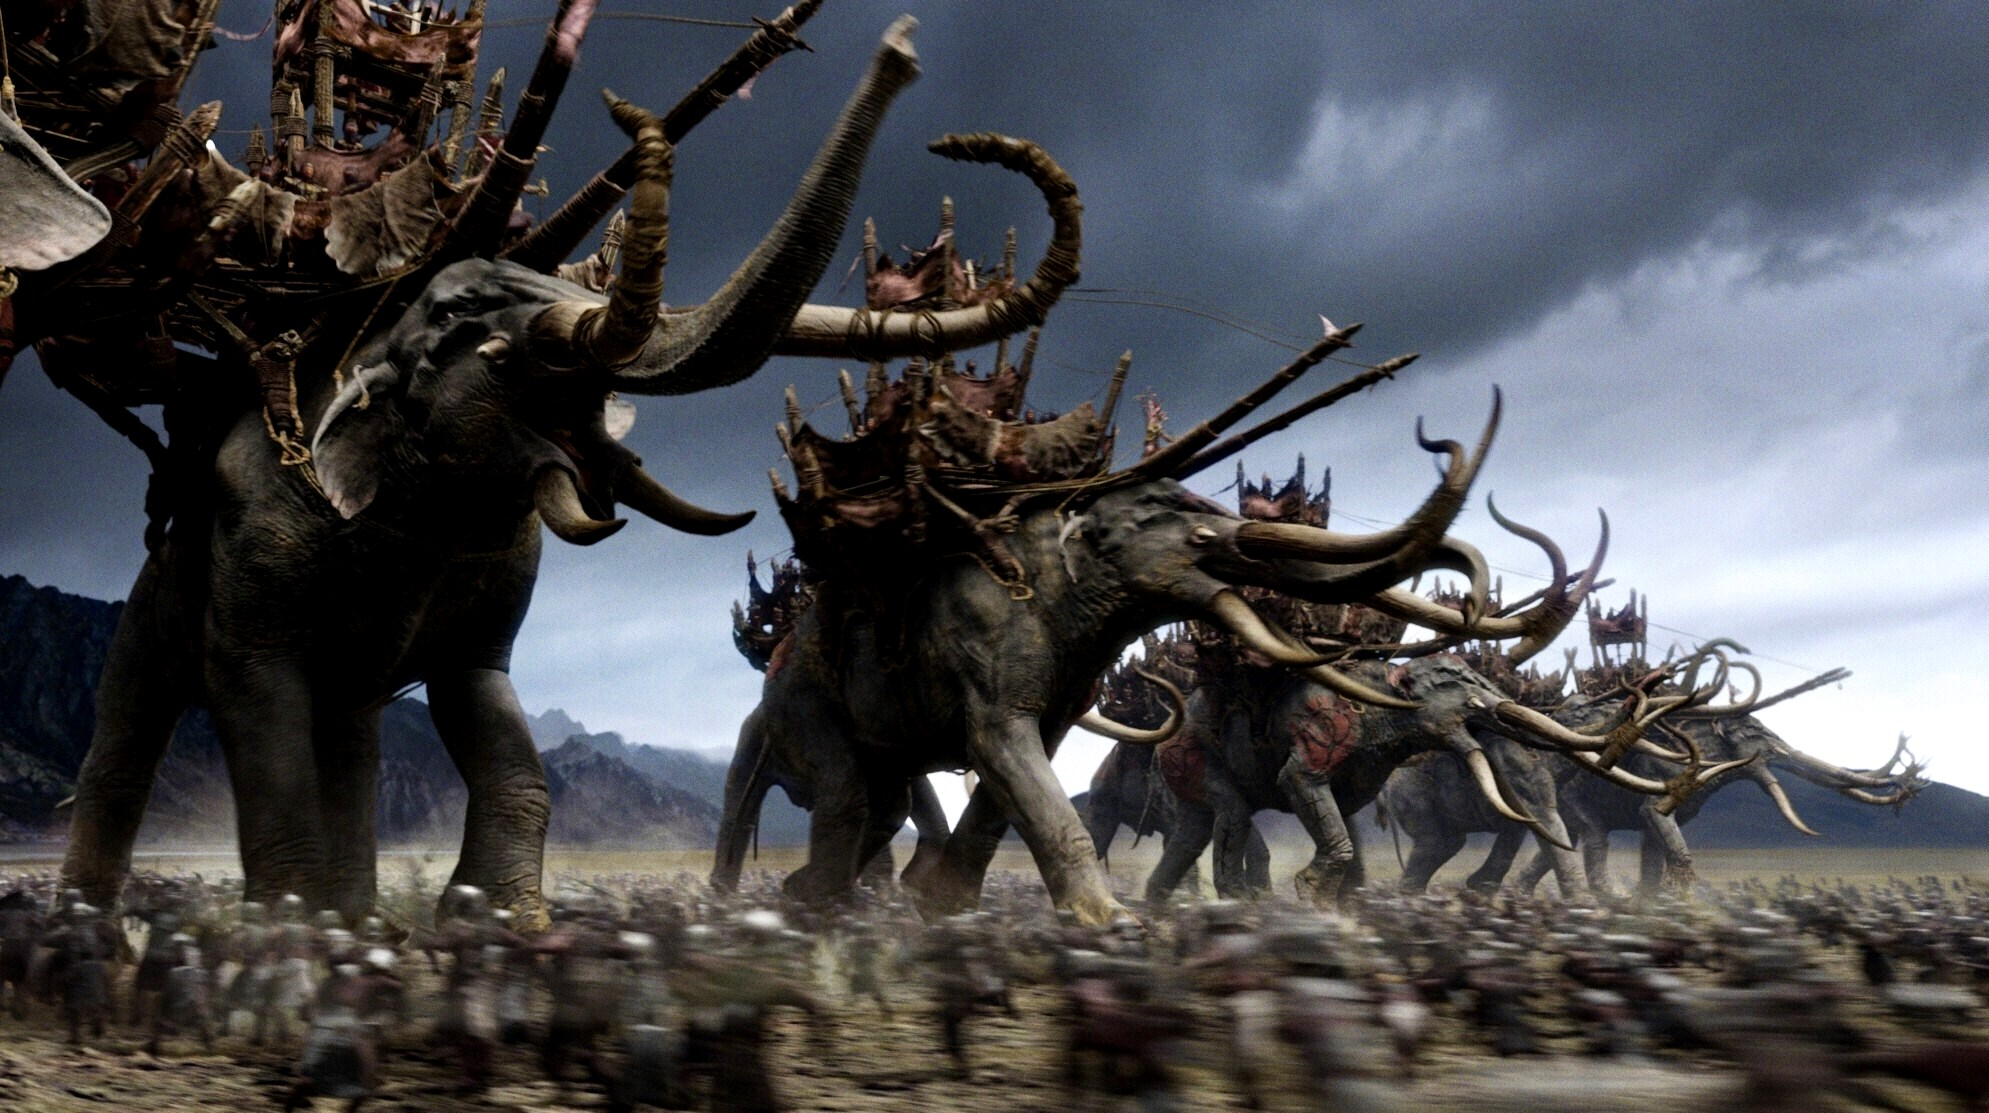 The oliphants ride into combat at the Battle of Pelennor Fields in The Lord of the Rings: The Return of the King (2003)